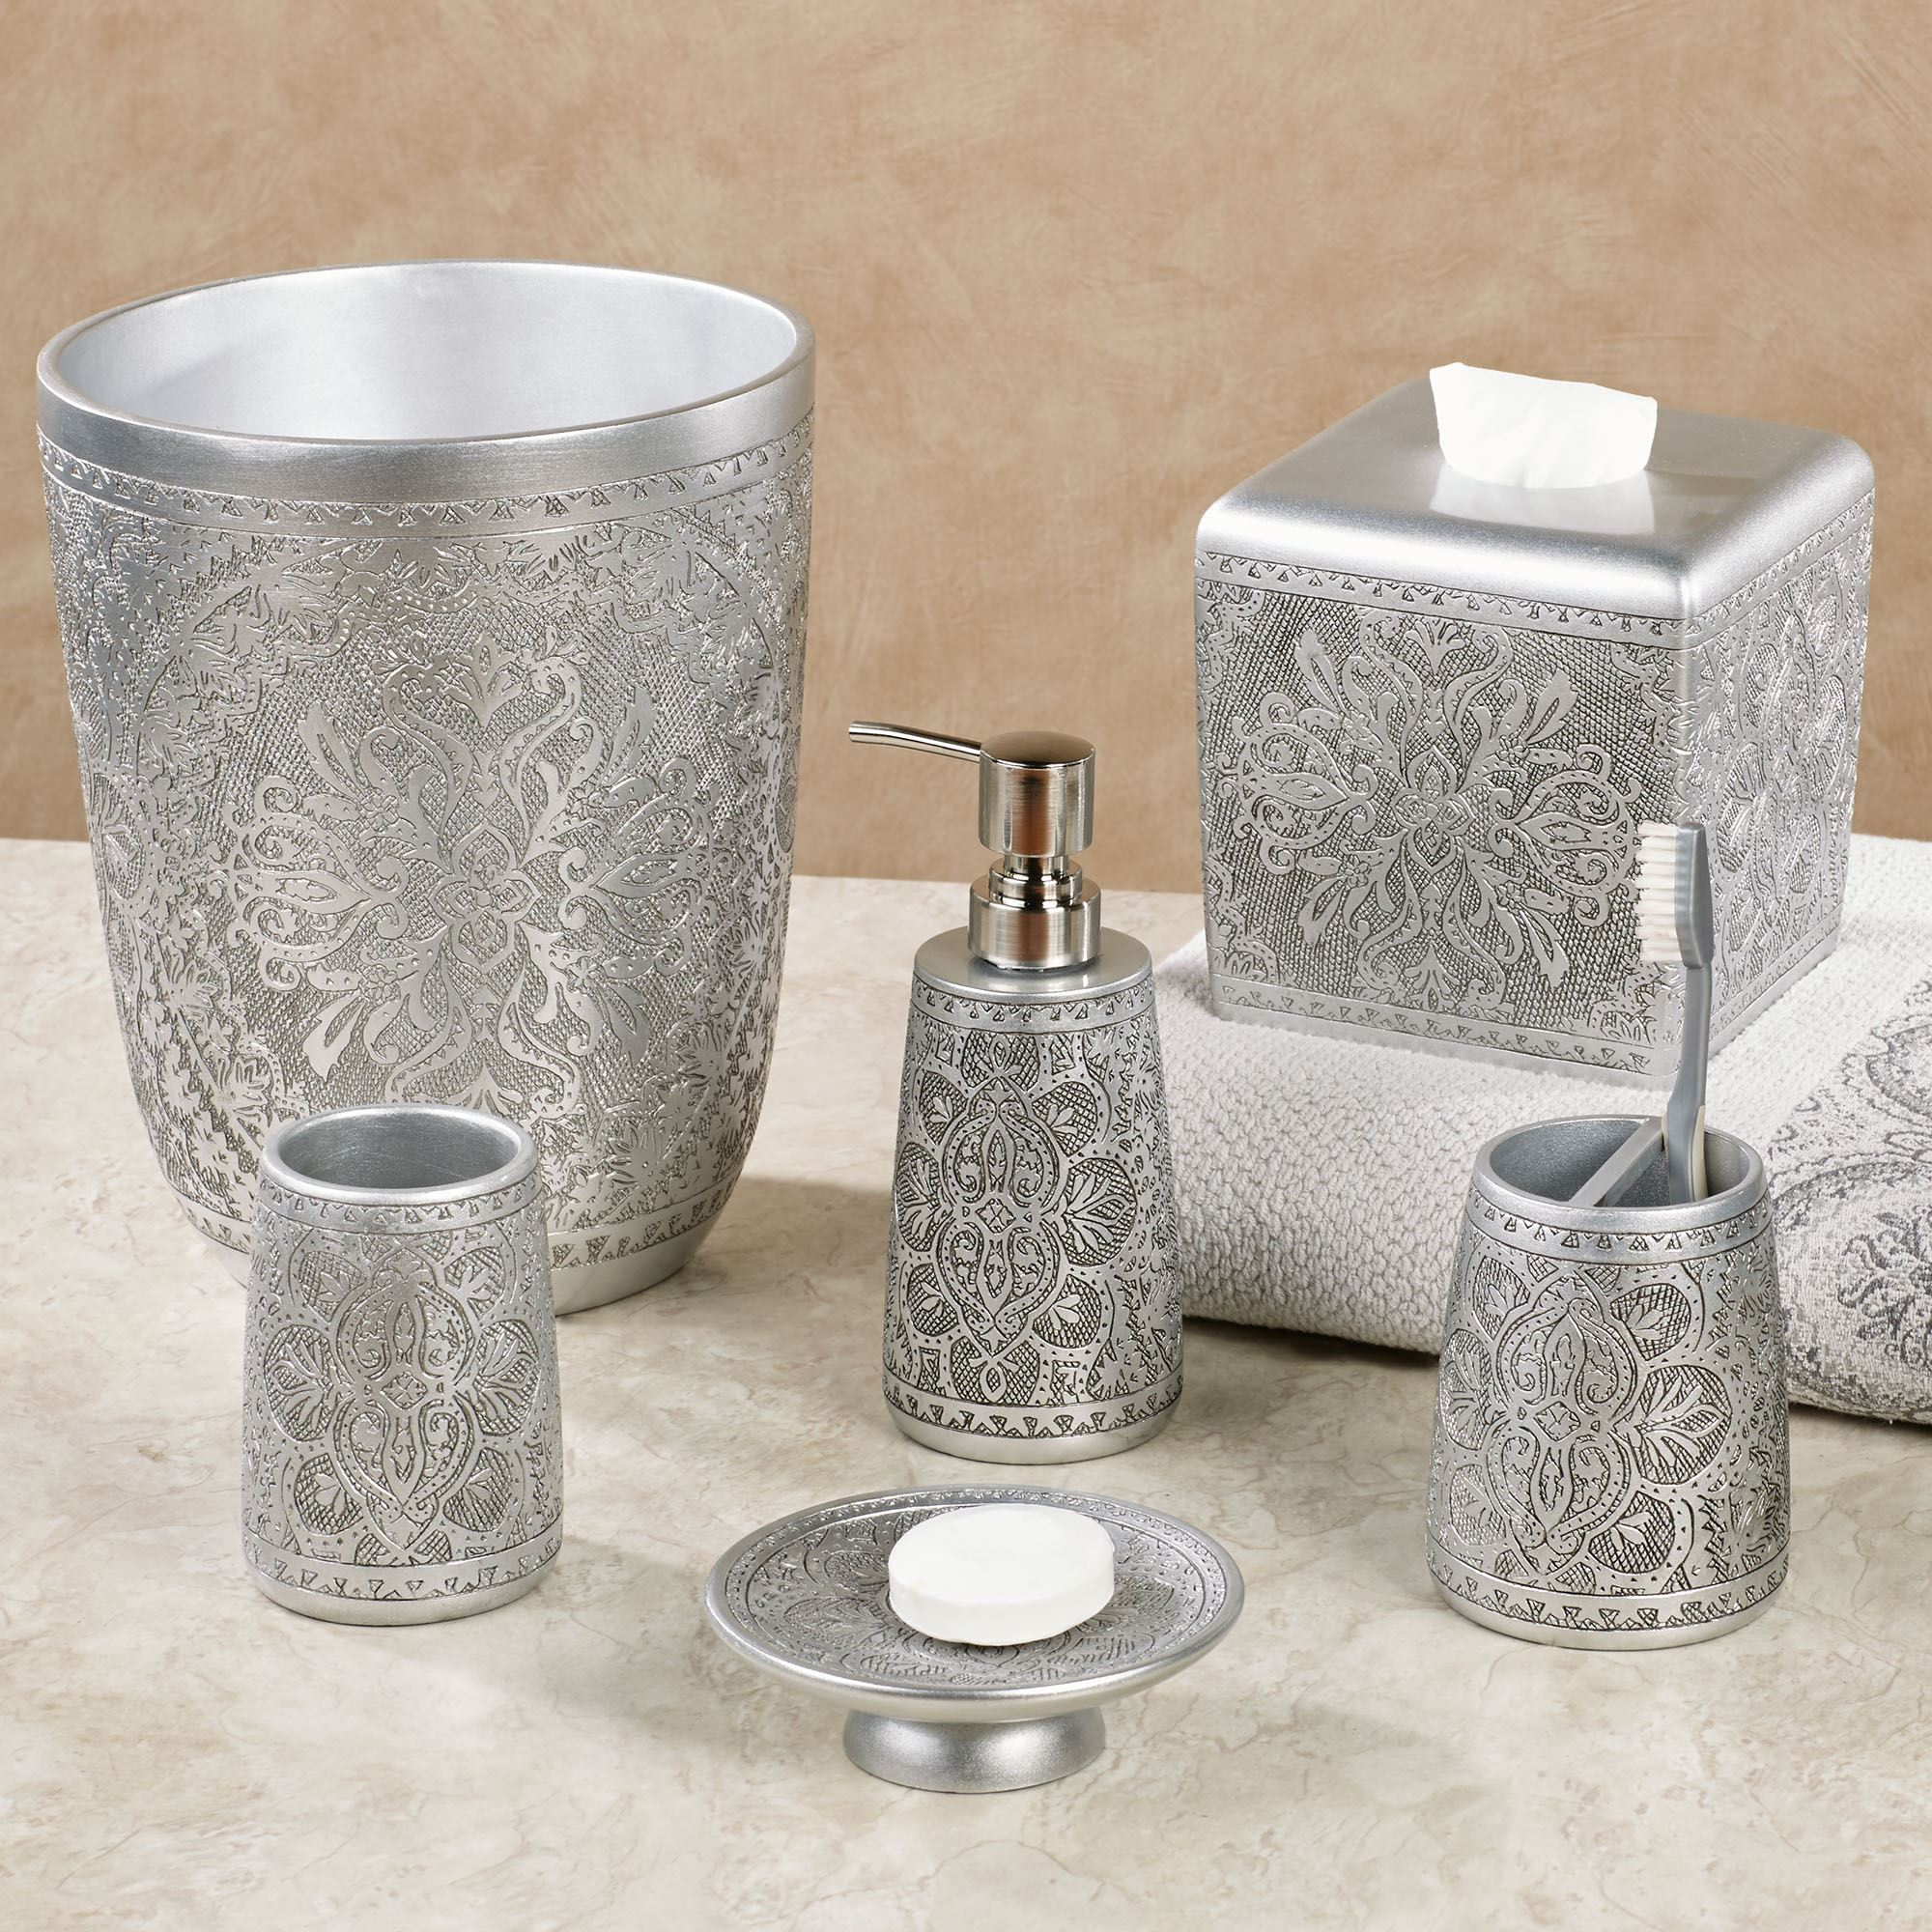 Bathroom accessory sets for less veratex coral reef bath for Coral reef bathroom decor